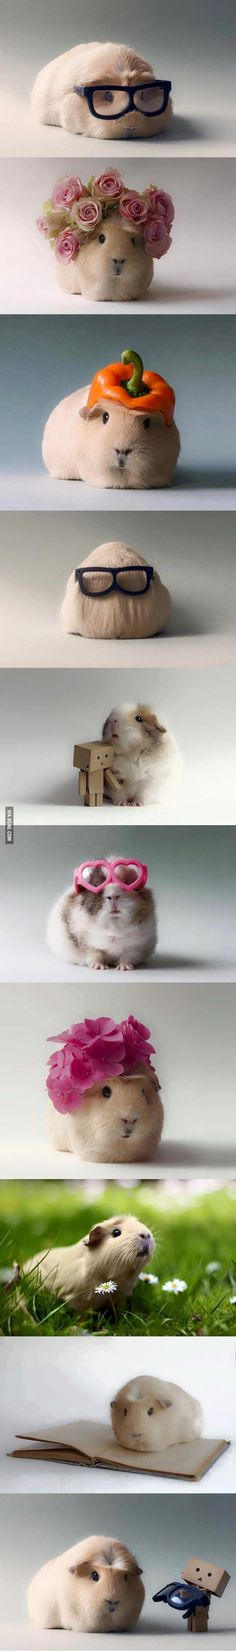 Hamsters with things on their heads! Having a bad day? These floofs will help you cheer up! Cute Funny Animals, Funny Animal Pictures, Cute Baby Animals, Funny Cute, Animals And Pets, Cute Pictures, Funny Dogs, Bizarre Pictures, 9gag Funny